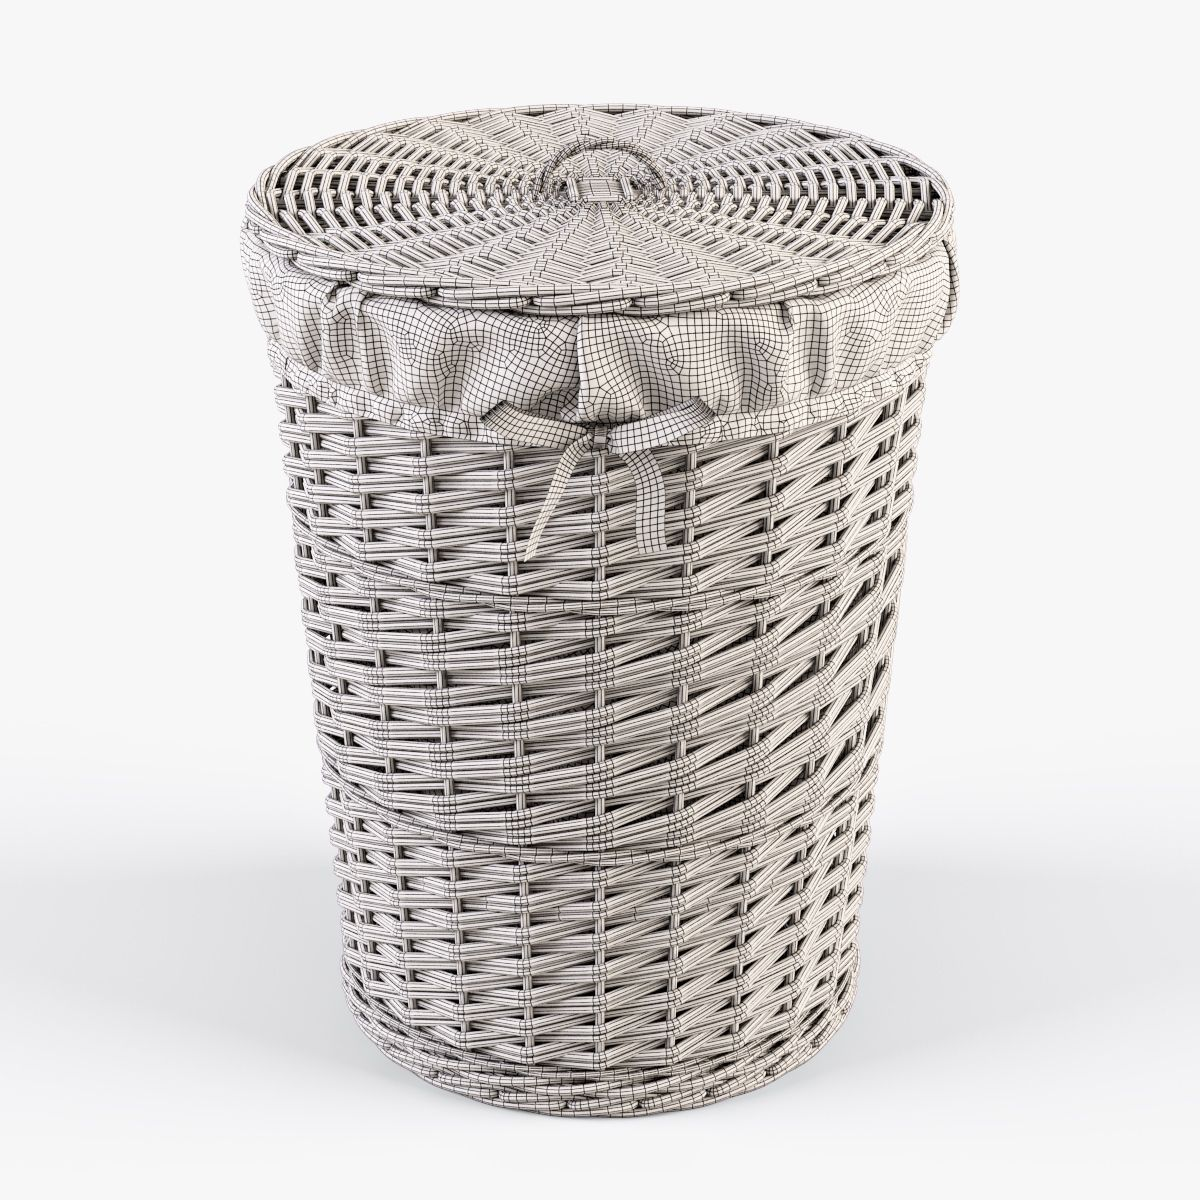 Wicker Laundry Basket 03 Natural Color Wicker Laundry Basket